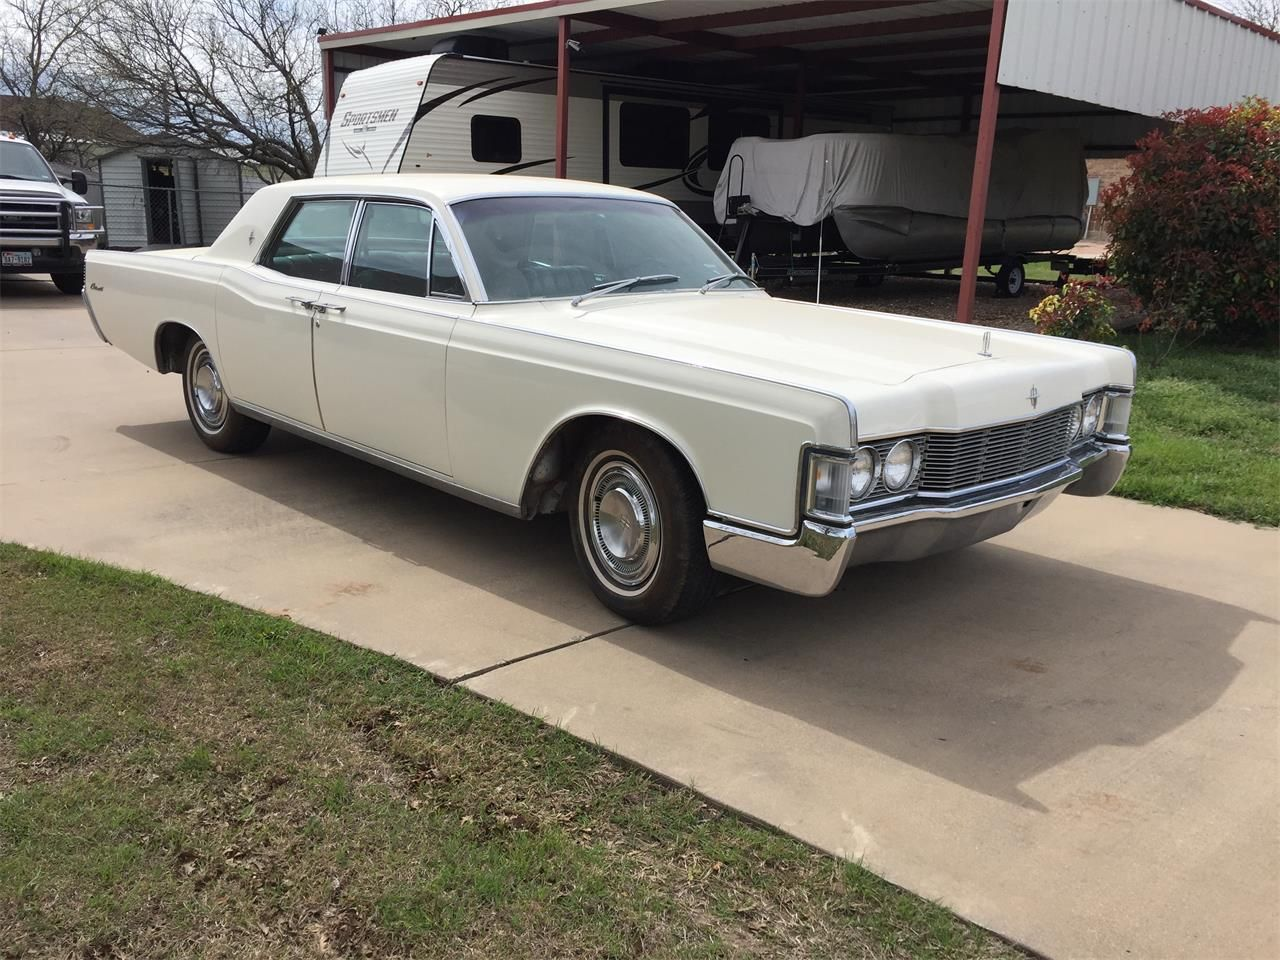 1968 Lincoln Continental In White Favorite Cars Lincoln